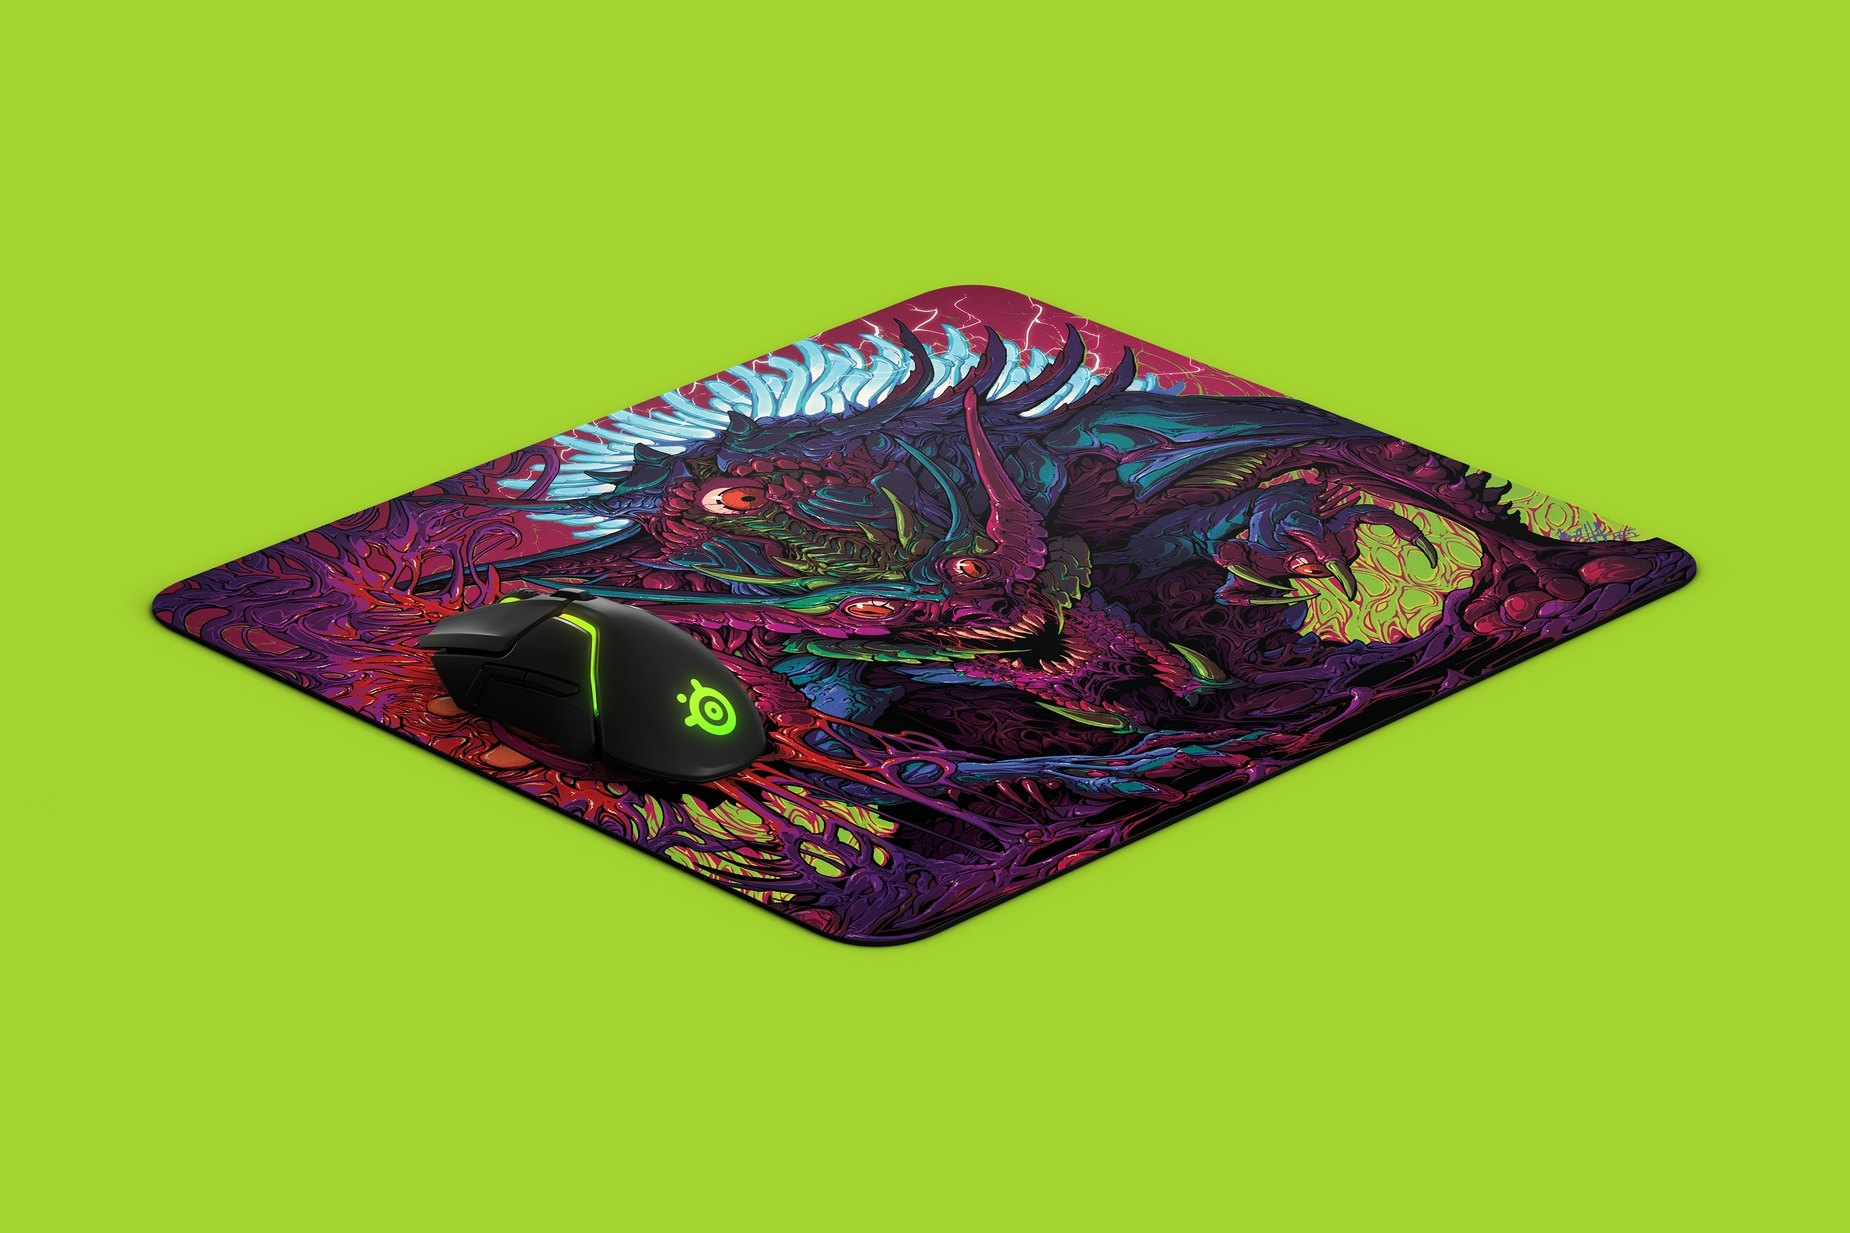 Brock Hofer's SteelSeries QcK mousepad design with a SteelSeries mouse on top